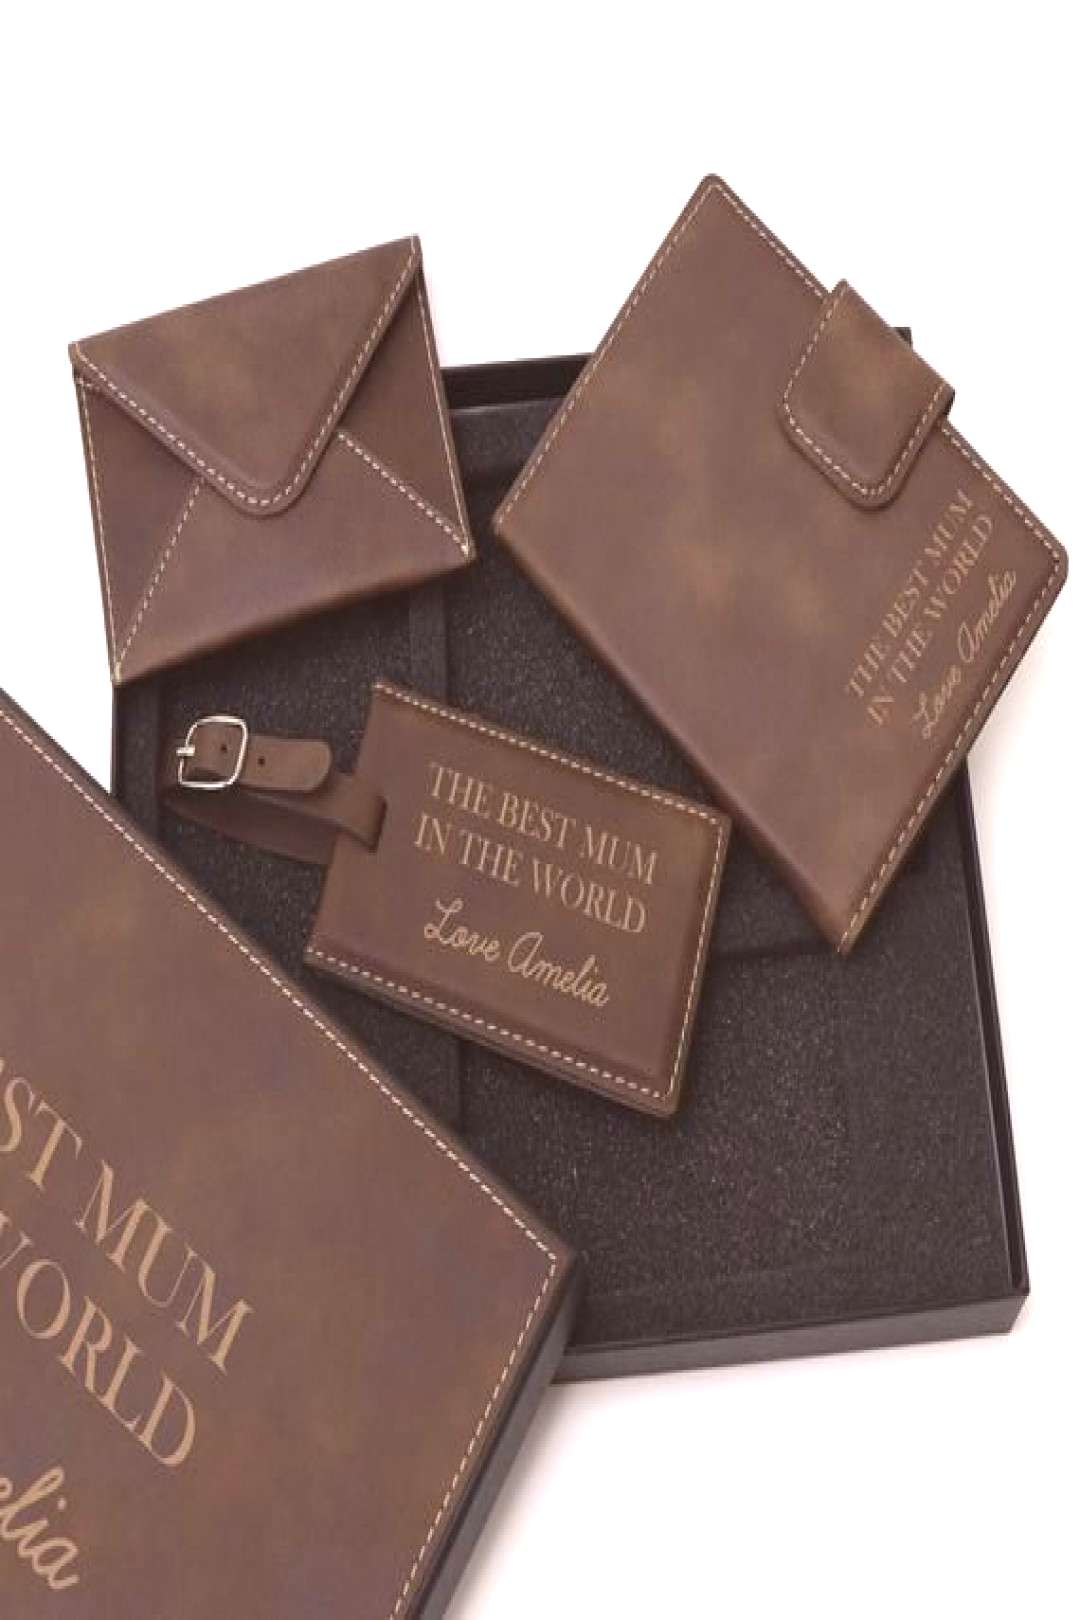 Personalised Travel Gift Set Mothers Day Brown - Affordable gifts for Mum - Personalised Farewell G